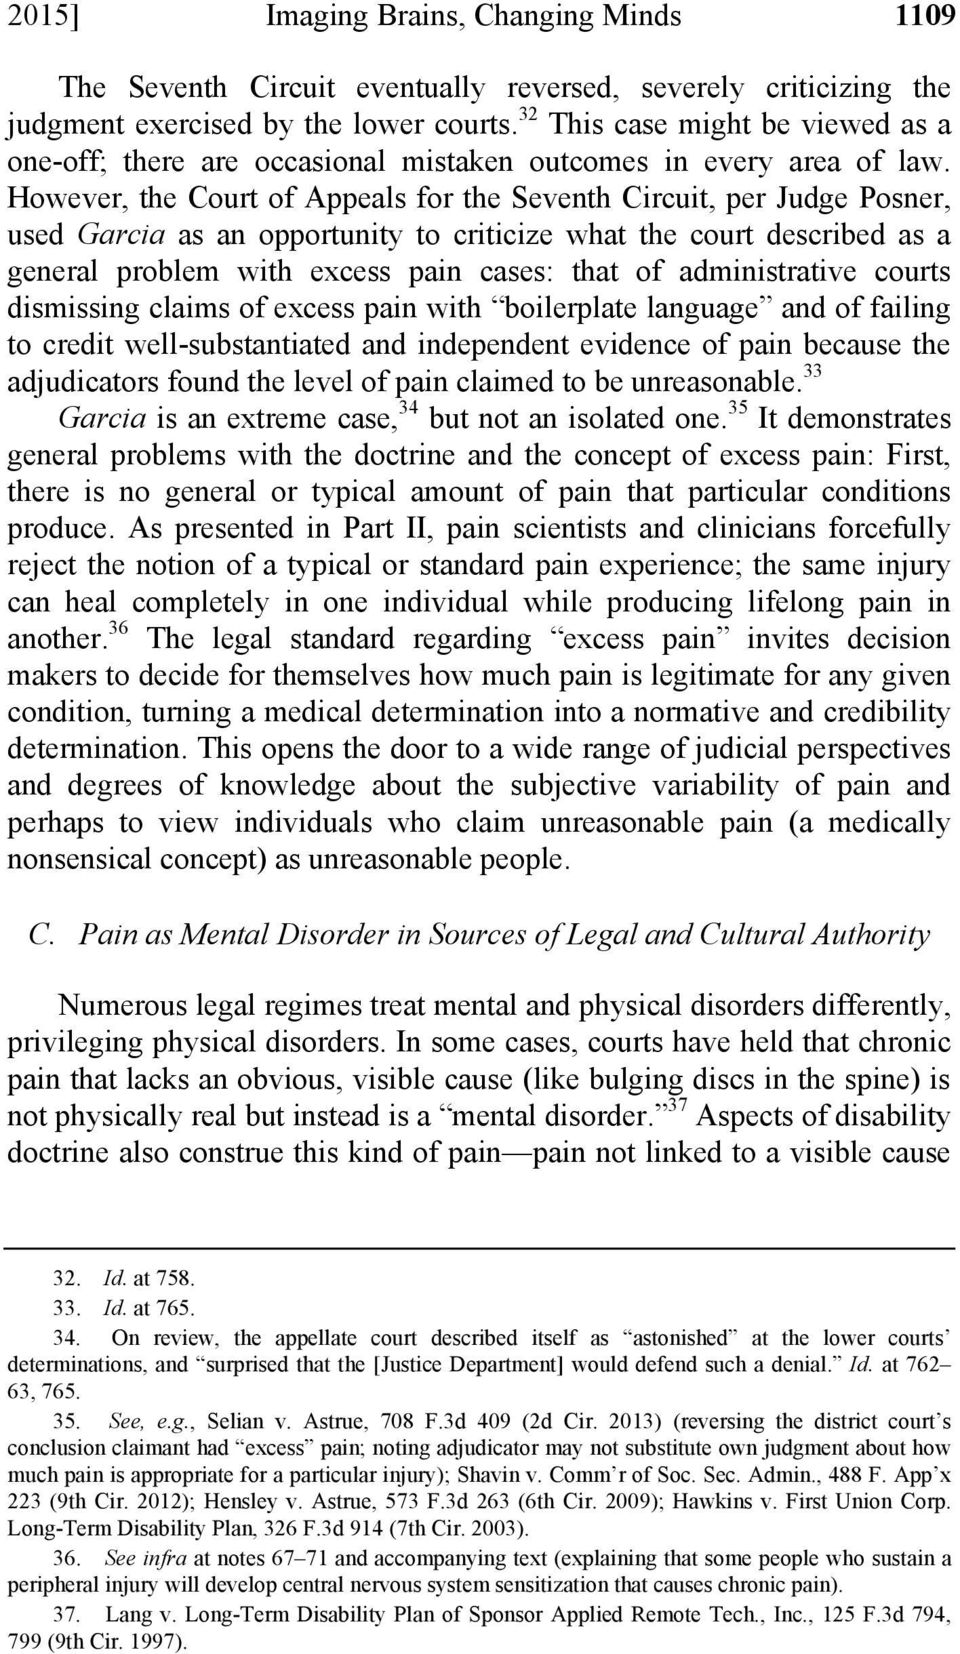 However, the Court of Appeals for the Seventh Circuit, per Judge Posner, used Garcia as an opportunity to criticize what the court described as a general problem with excess pain cases: that of